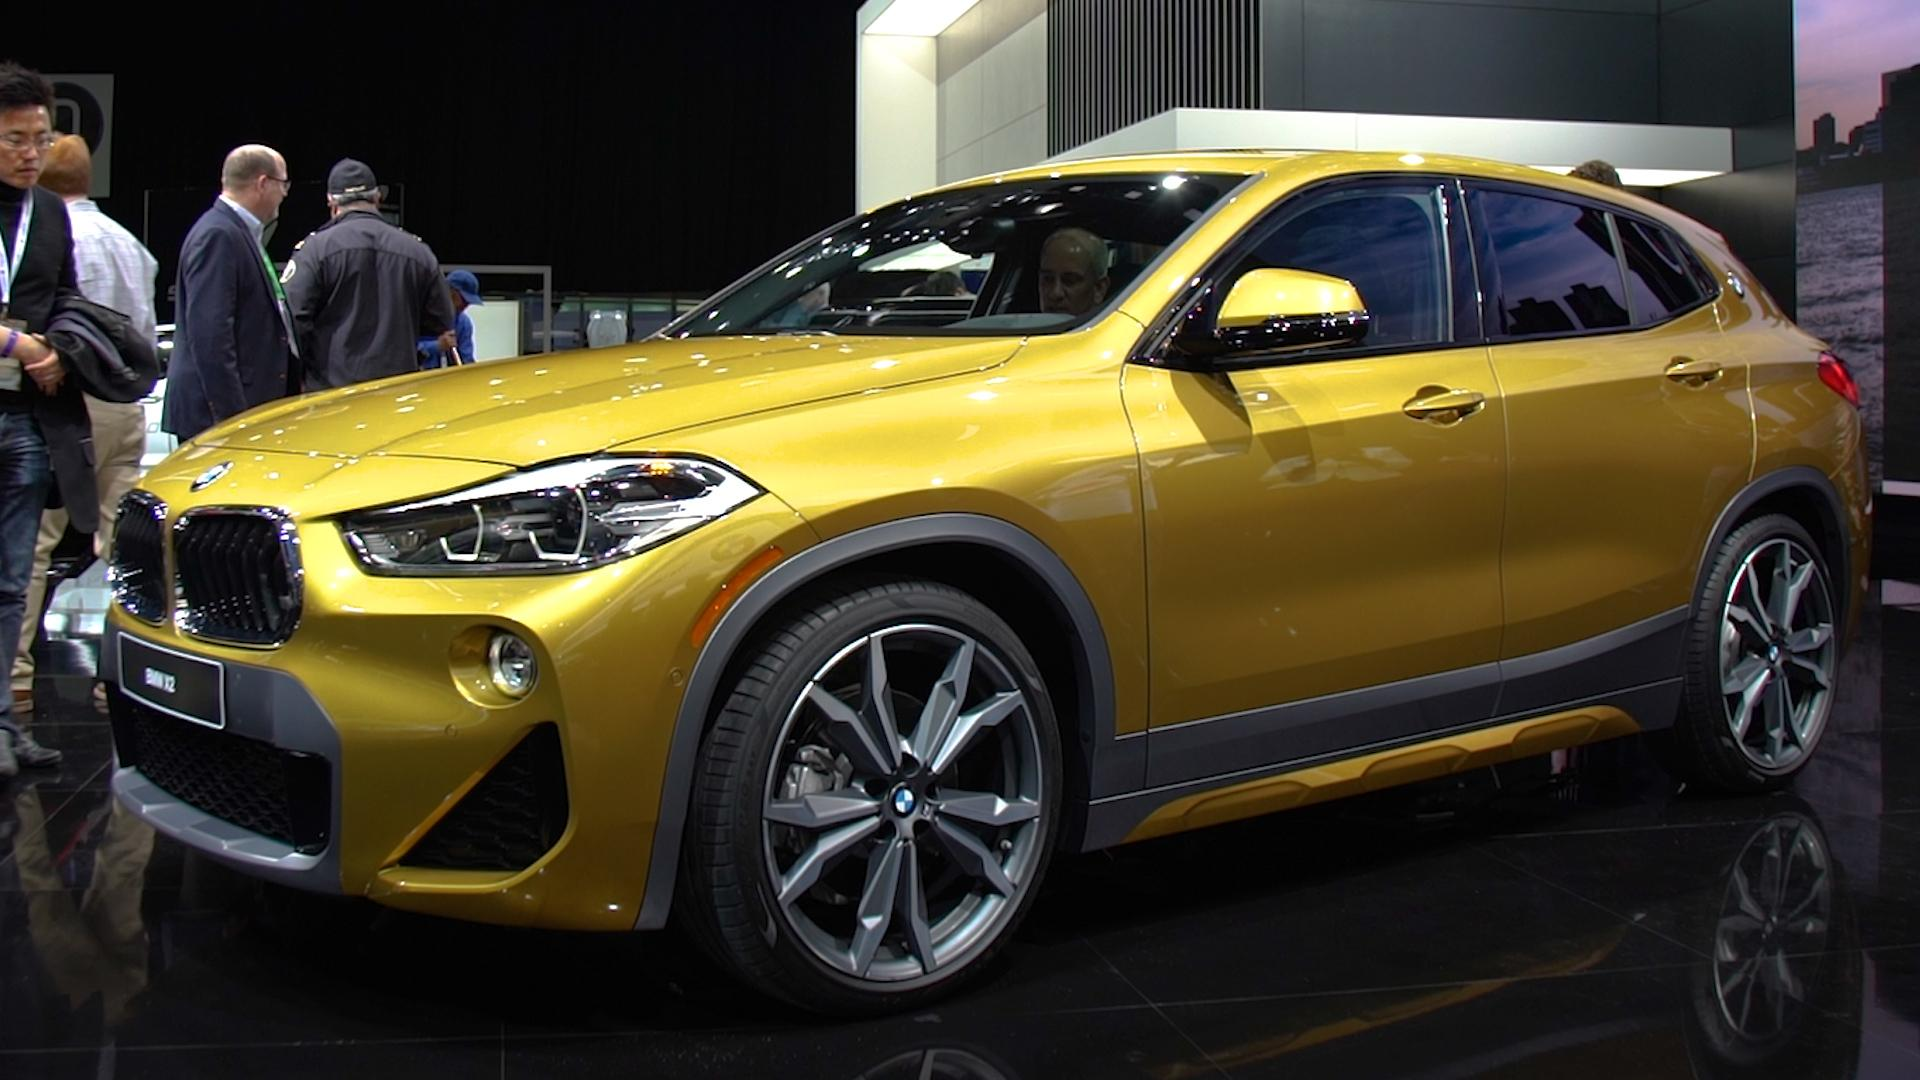 2018 Bmw X2 Is Smaller Sportier Take On X1 Suv Consumer Reports